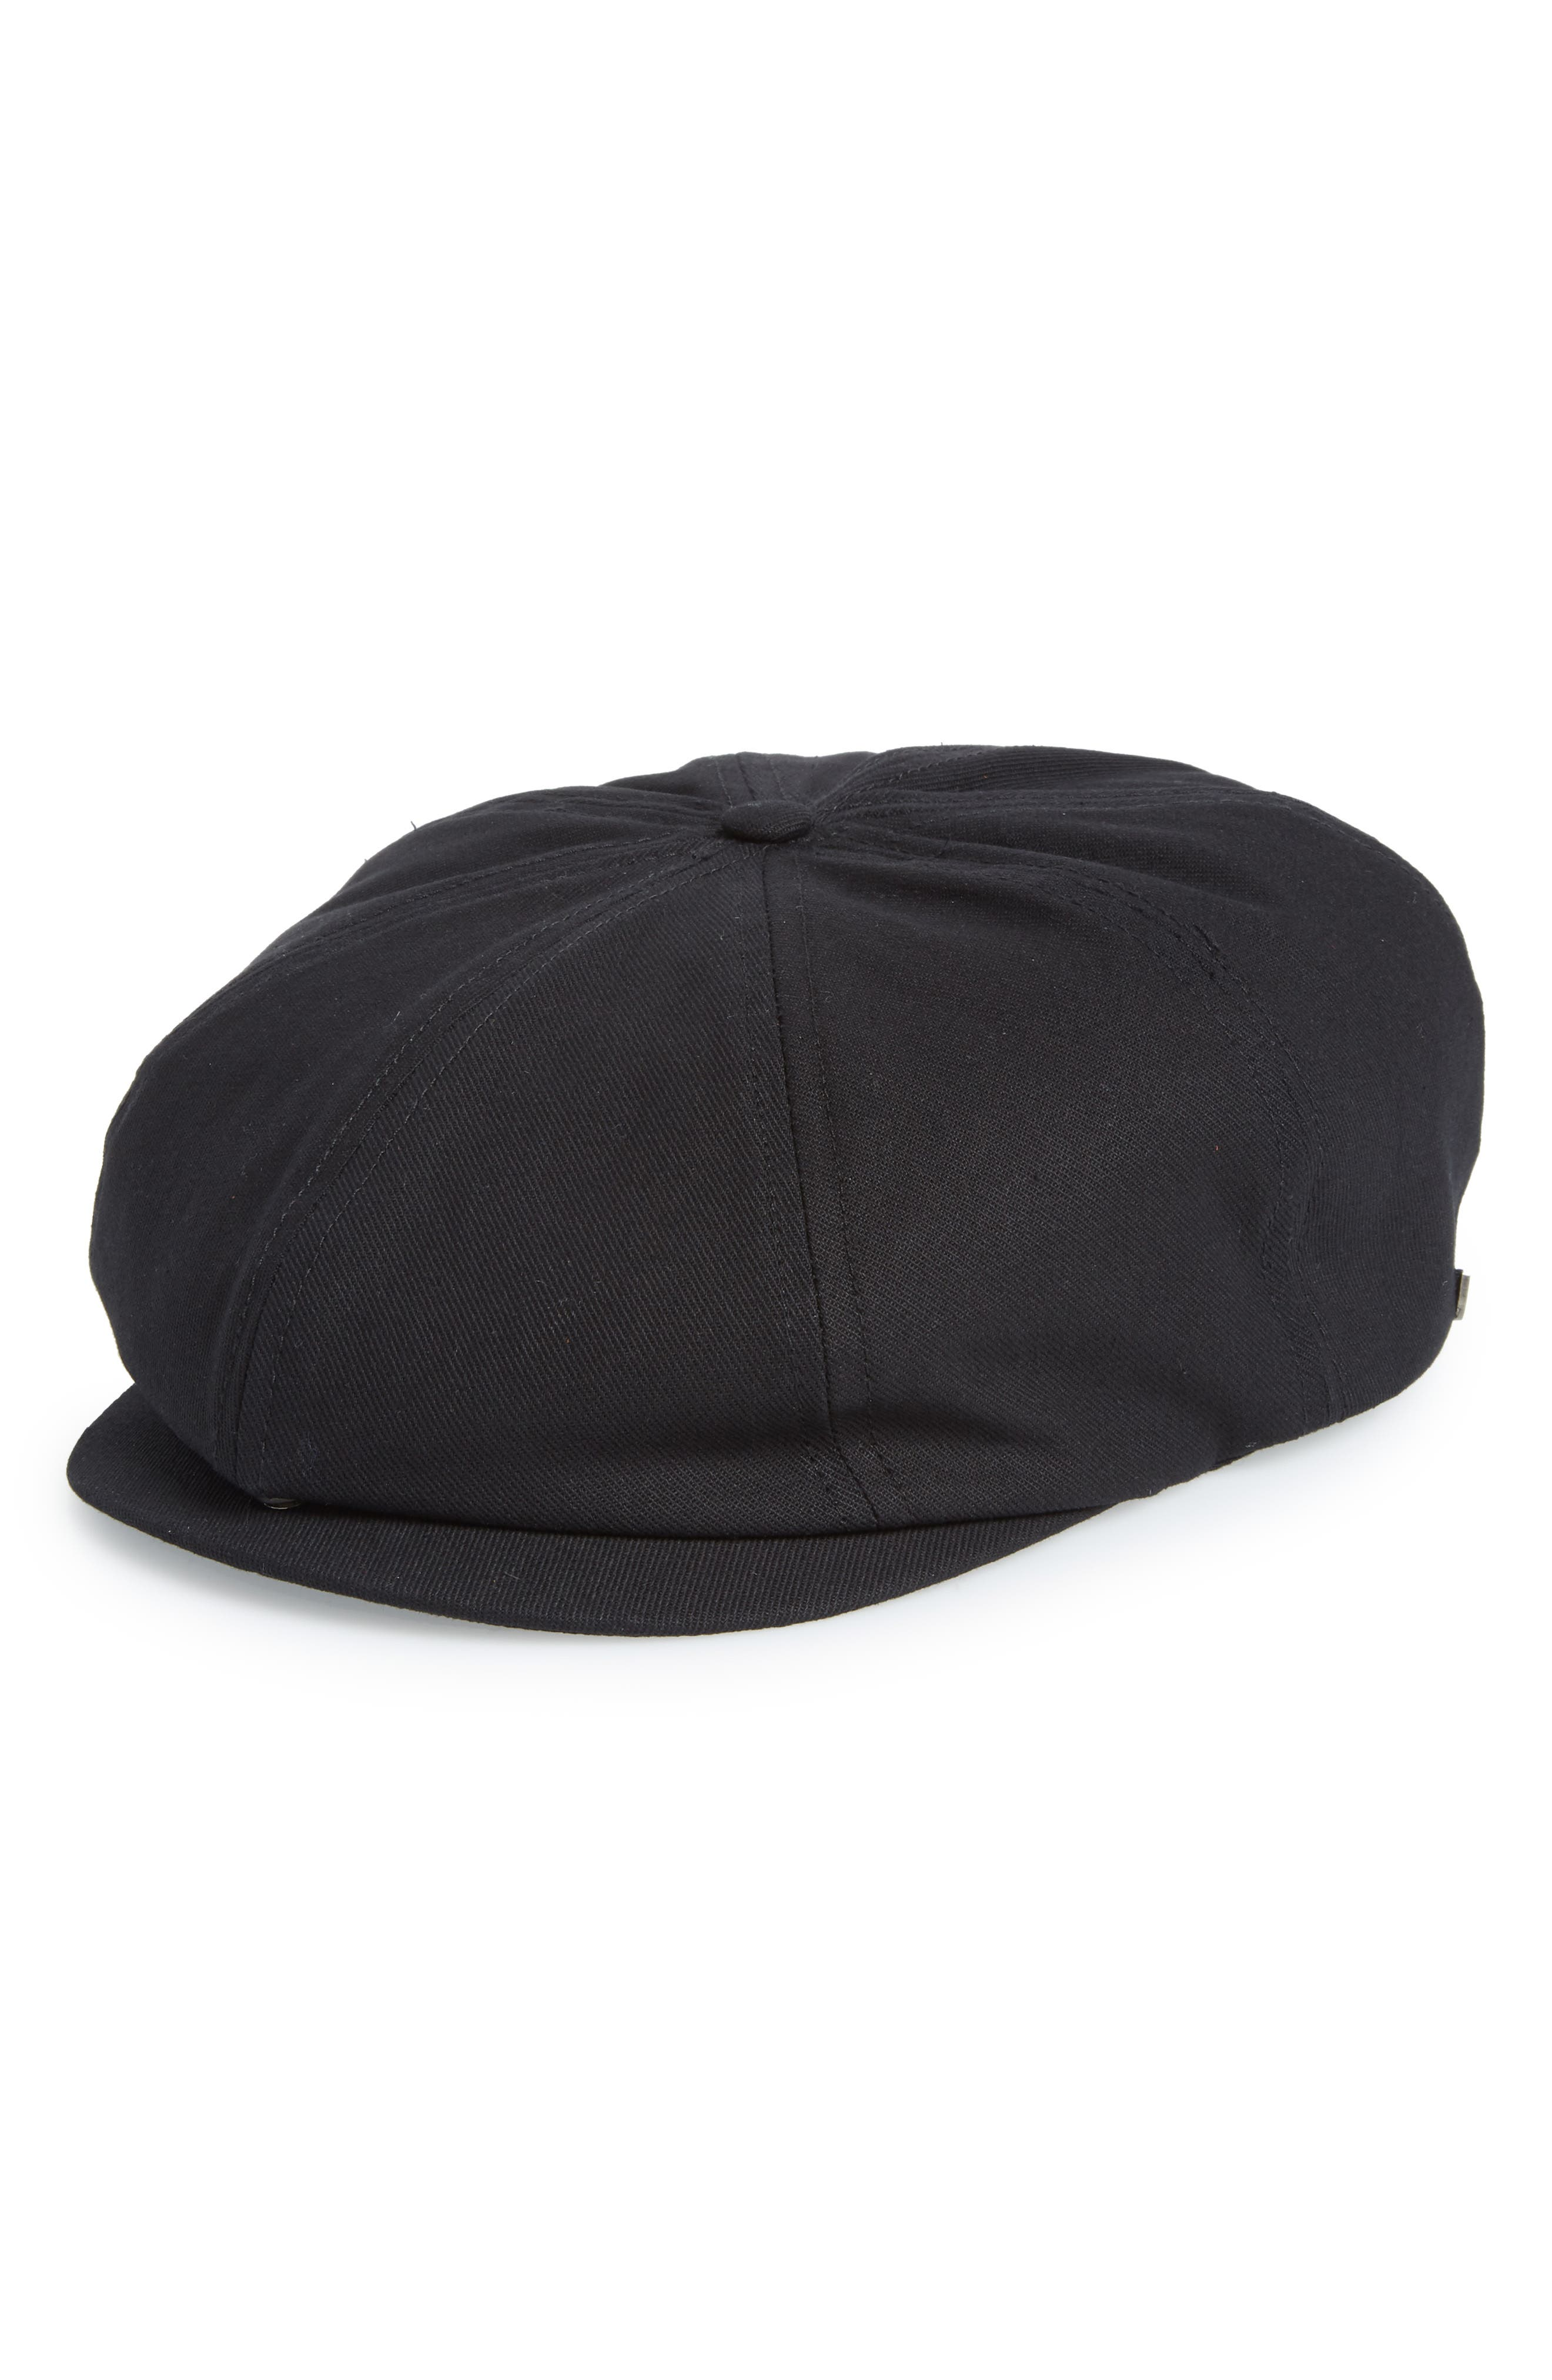 Brood Snap Brim Cap,                         Main,                         color, 001